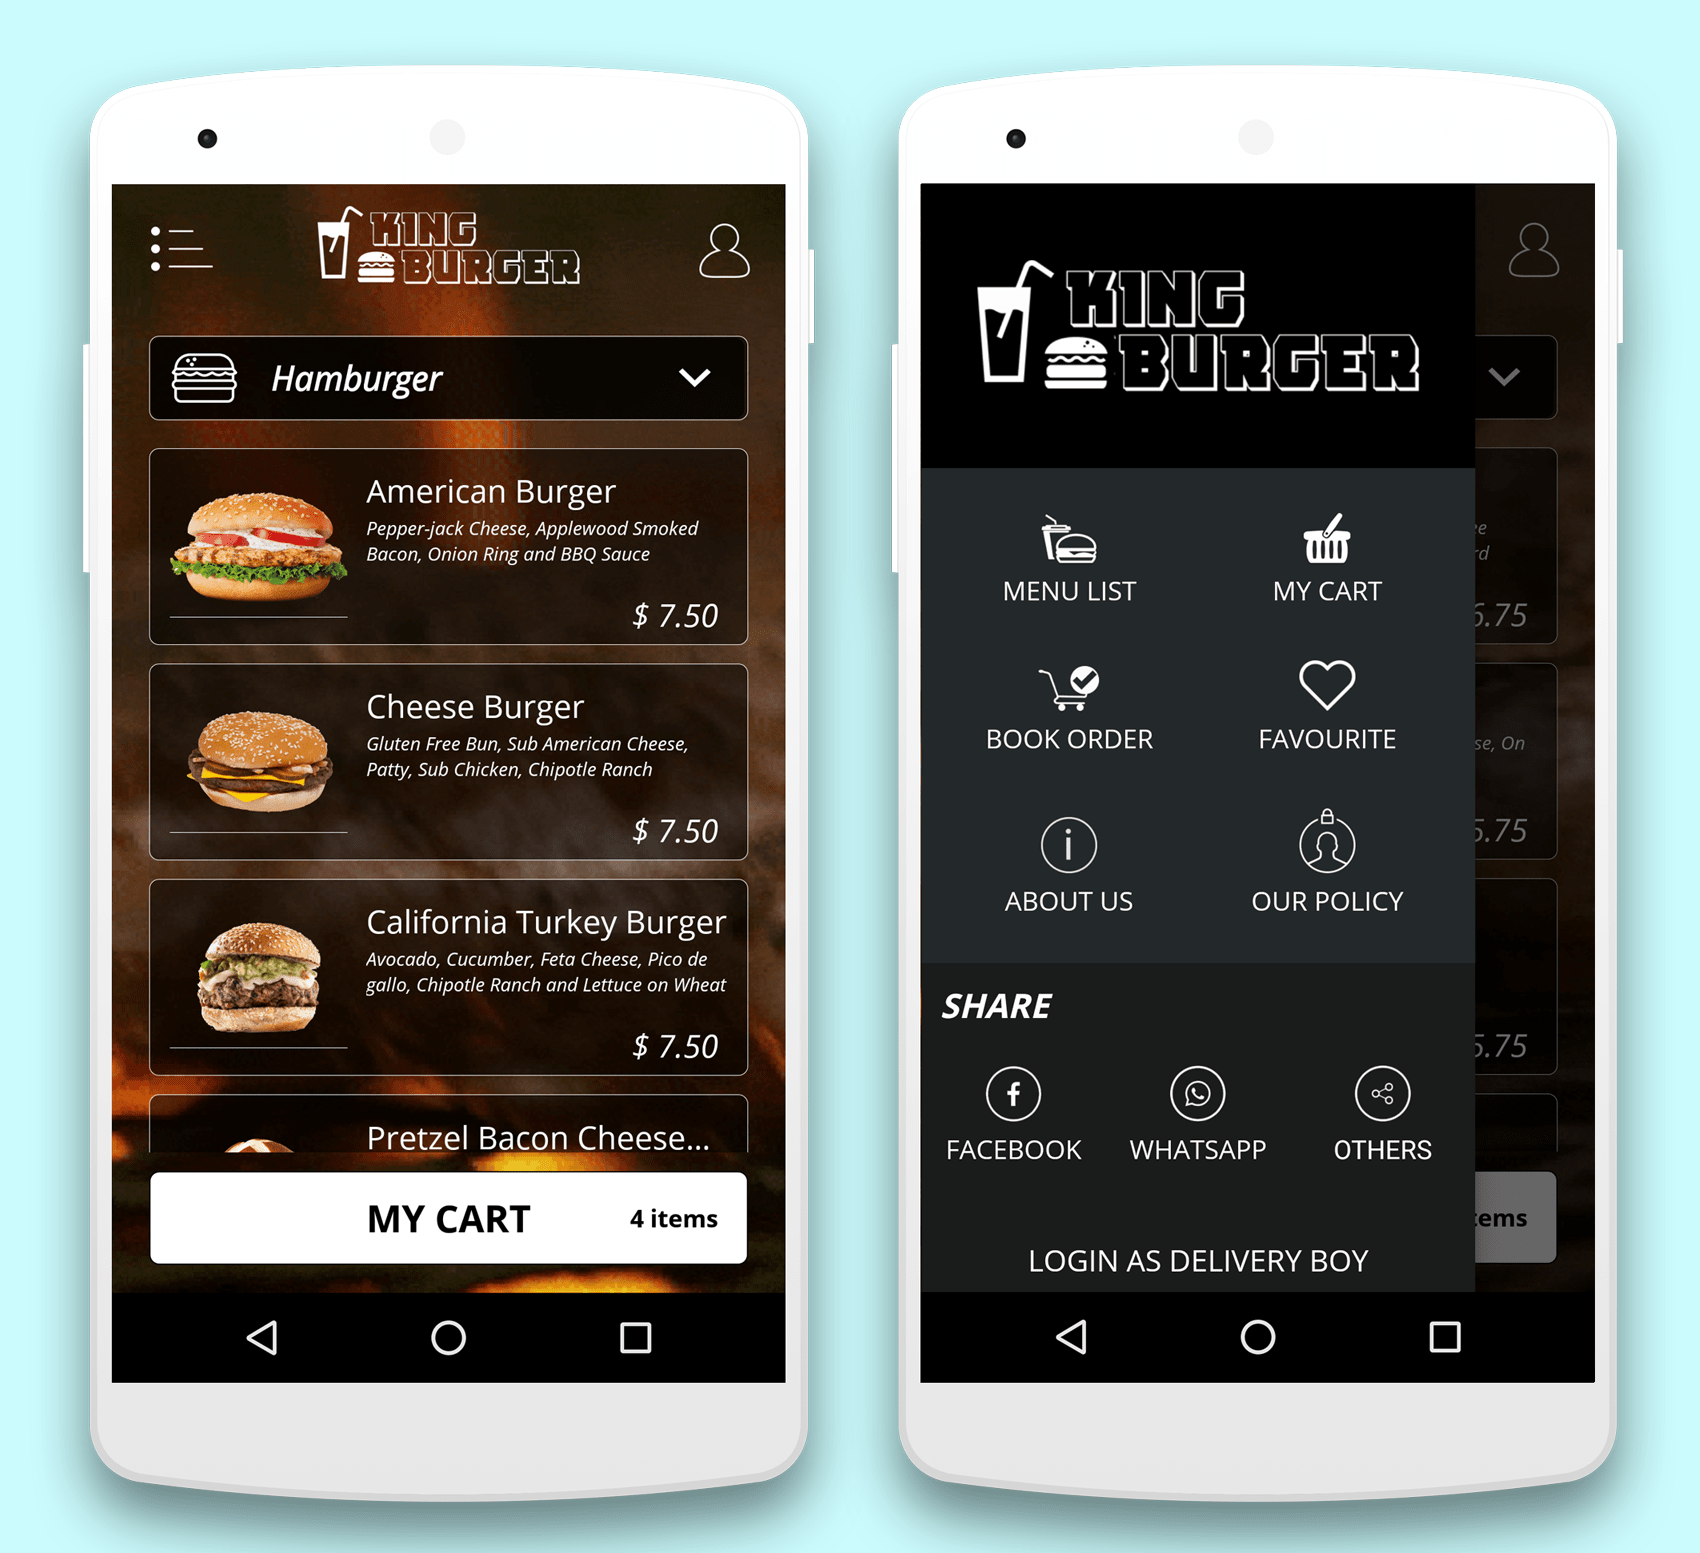 KING BURGER restaurant with Ingredients & delivery boy full android  application